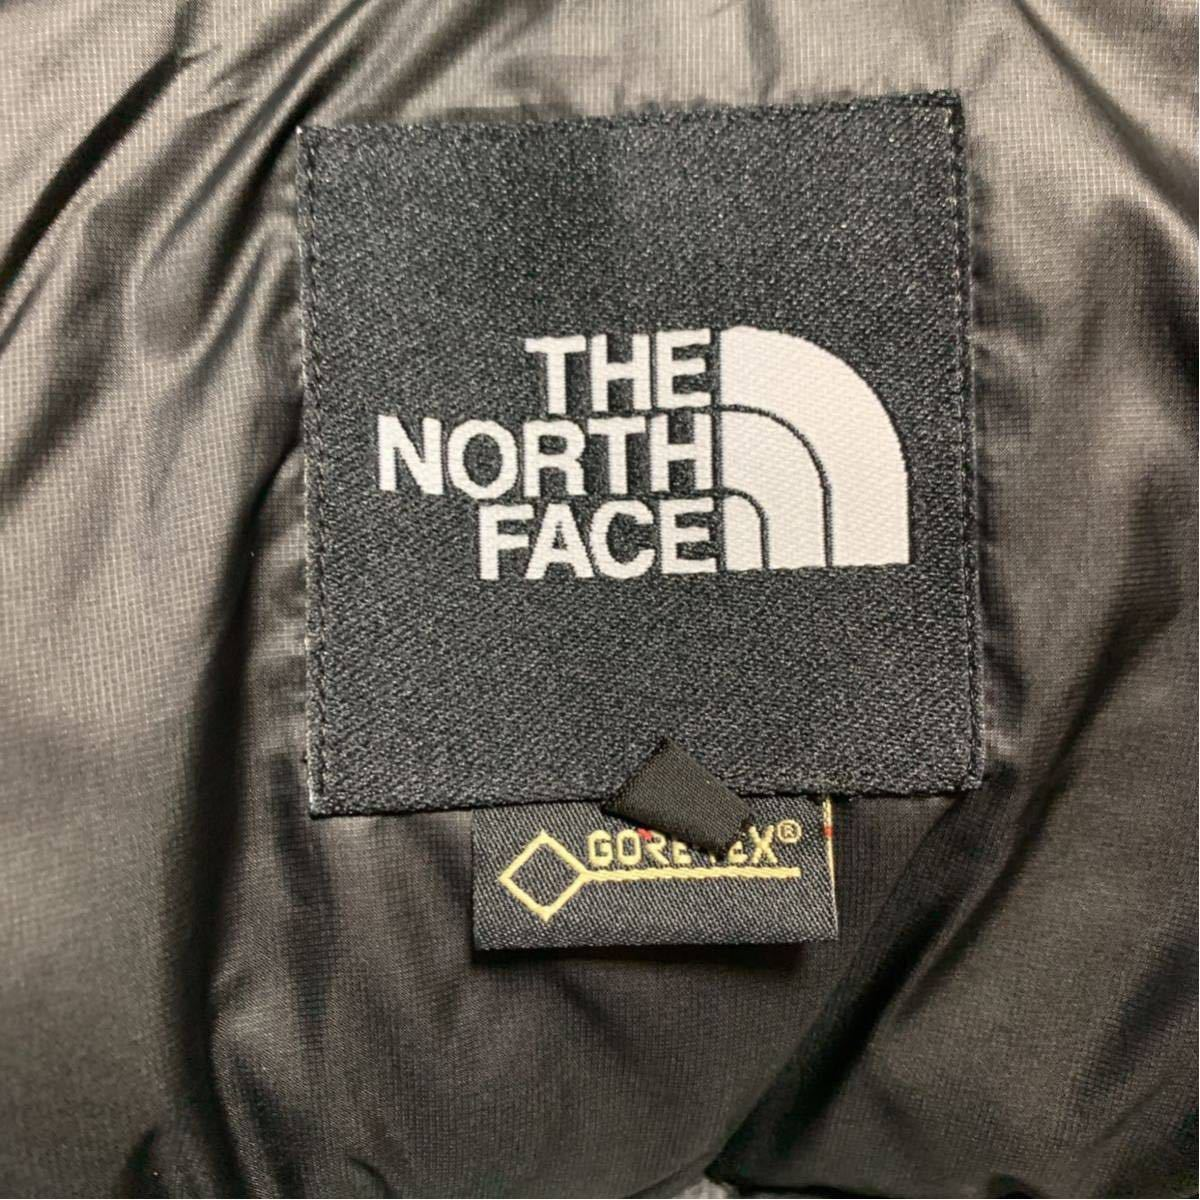 The North Face Antarctica PARKA L BD ボタニカルガーデングリーン GORE-TEX THE NORTH FACE_画像2